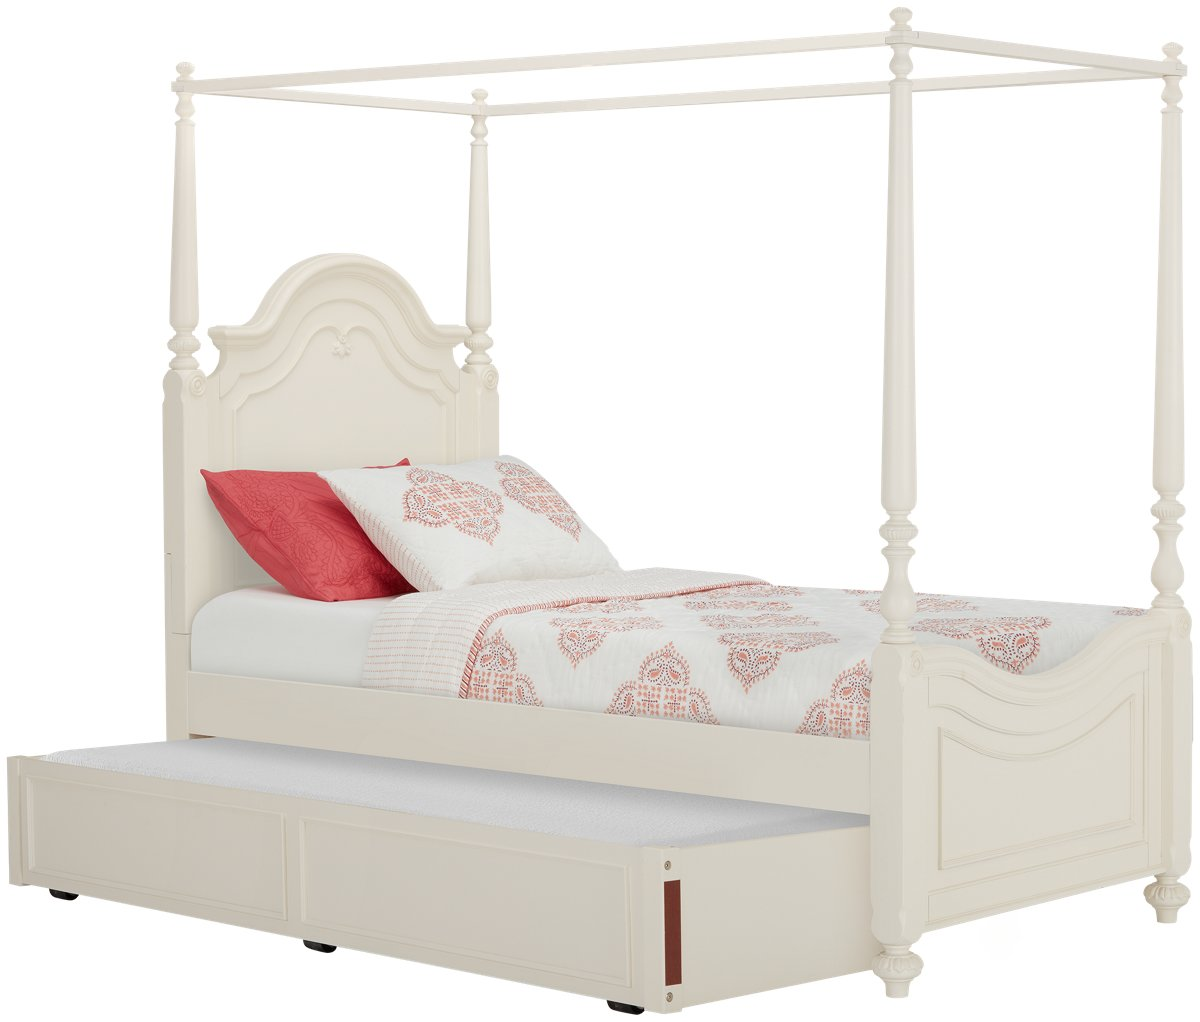 Bedroom Design For Youth